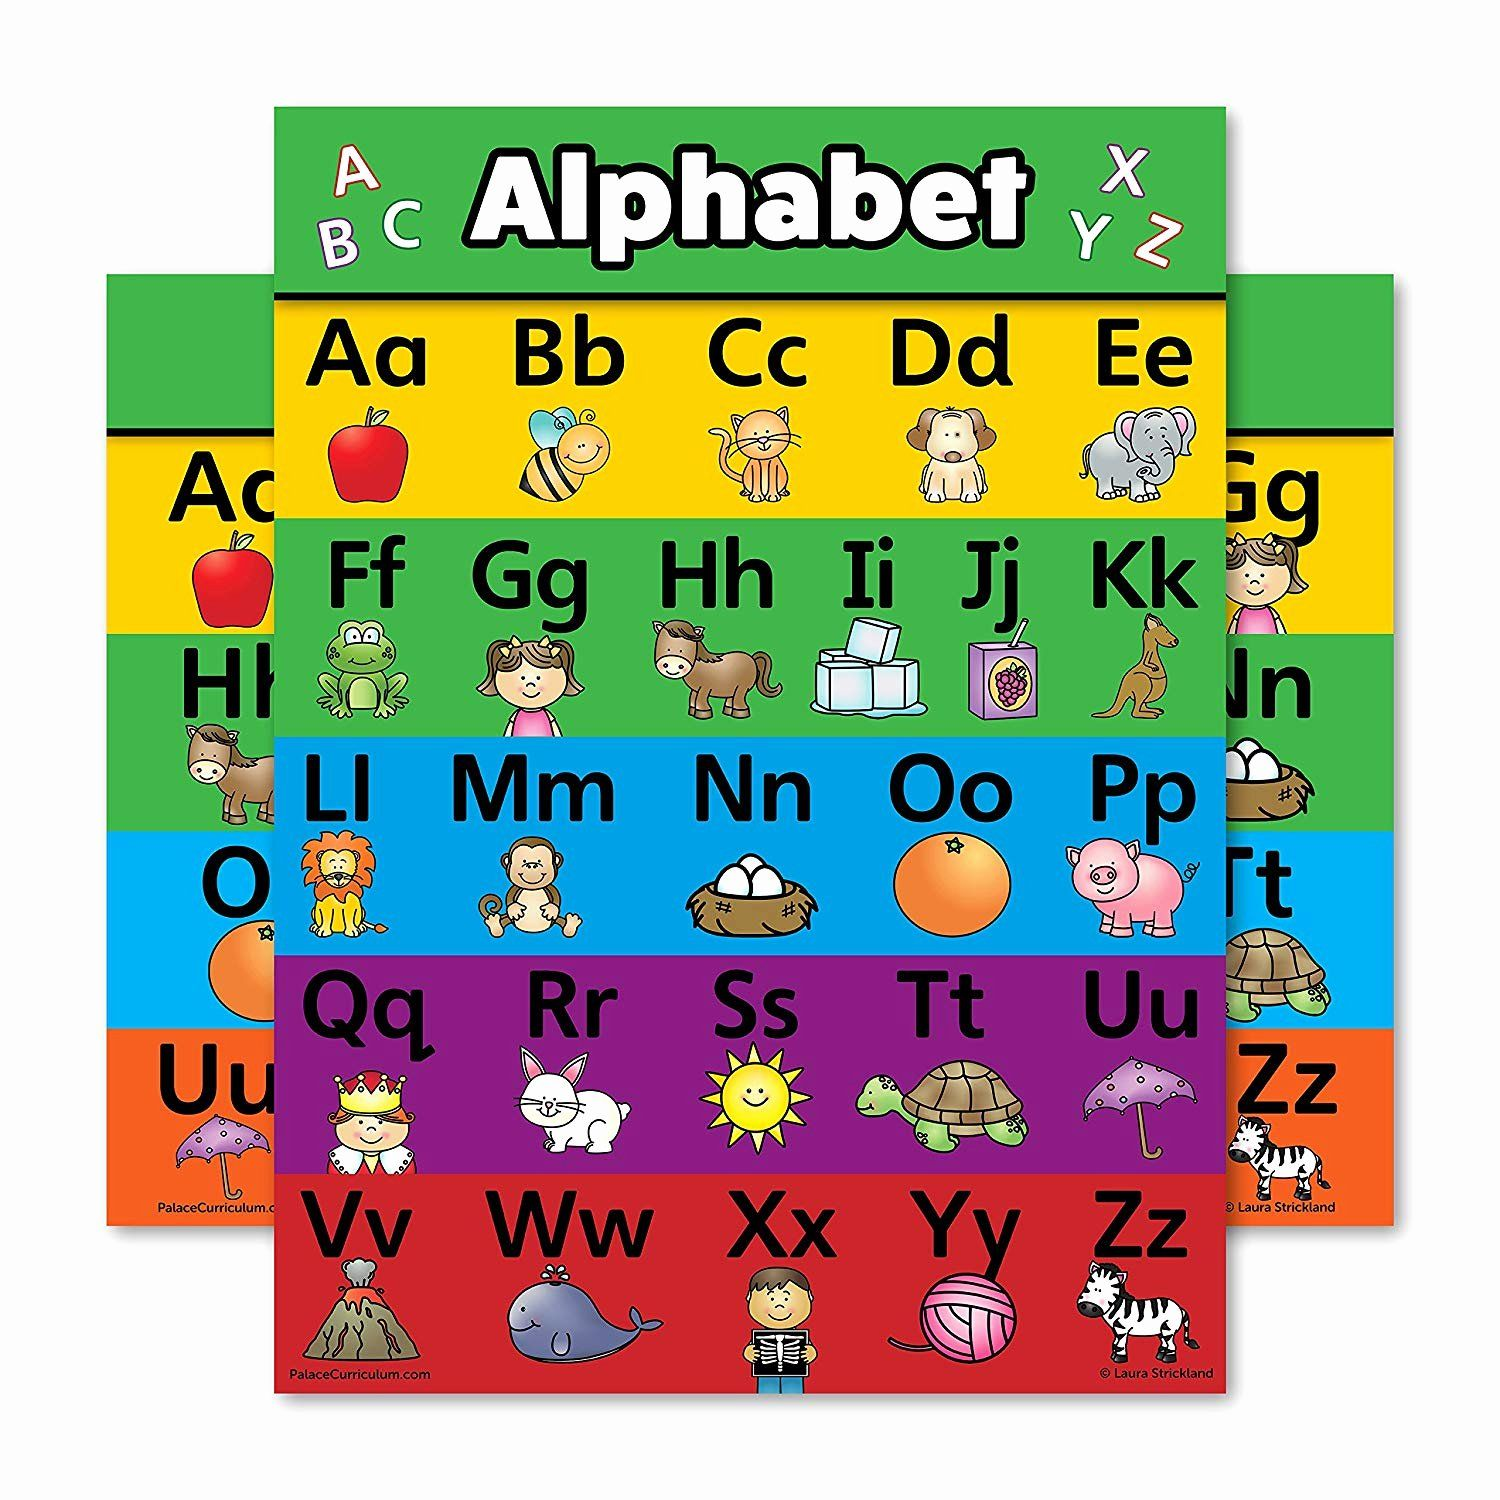 Alphabet Coloring Chart Printable Fresh Abc Alphabet Poster Chart Laminated Double Sided 18 X 24 Alphabet Poster Abc Alphabet Alphabet Coloring